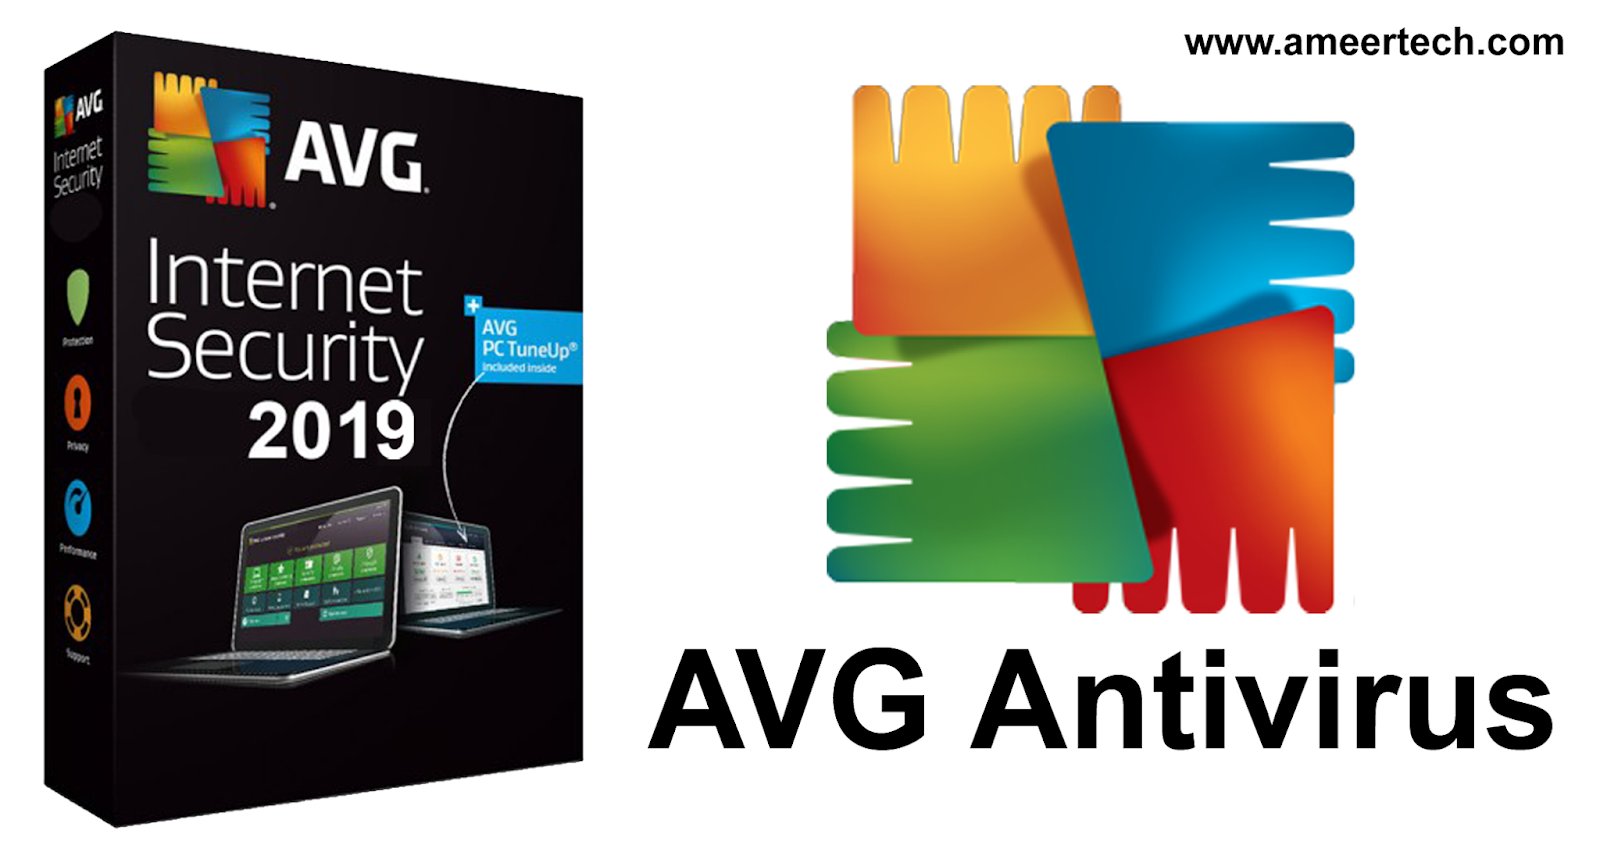 AVG Antivirus PRO Free Download (2019) For Windows 7